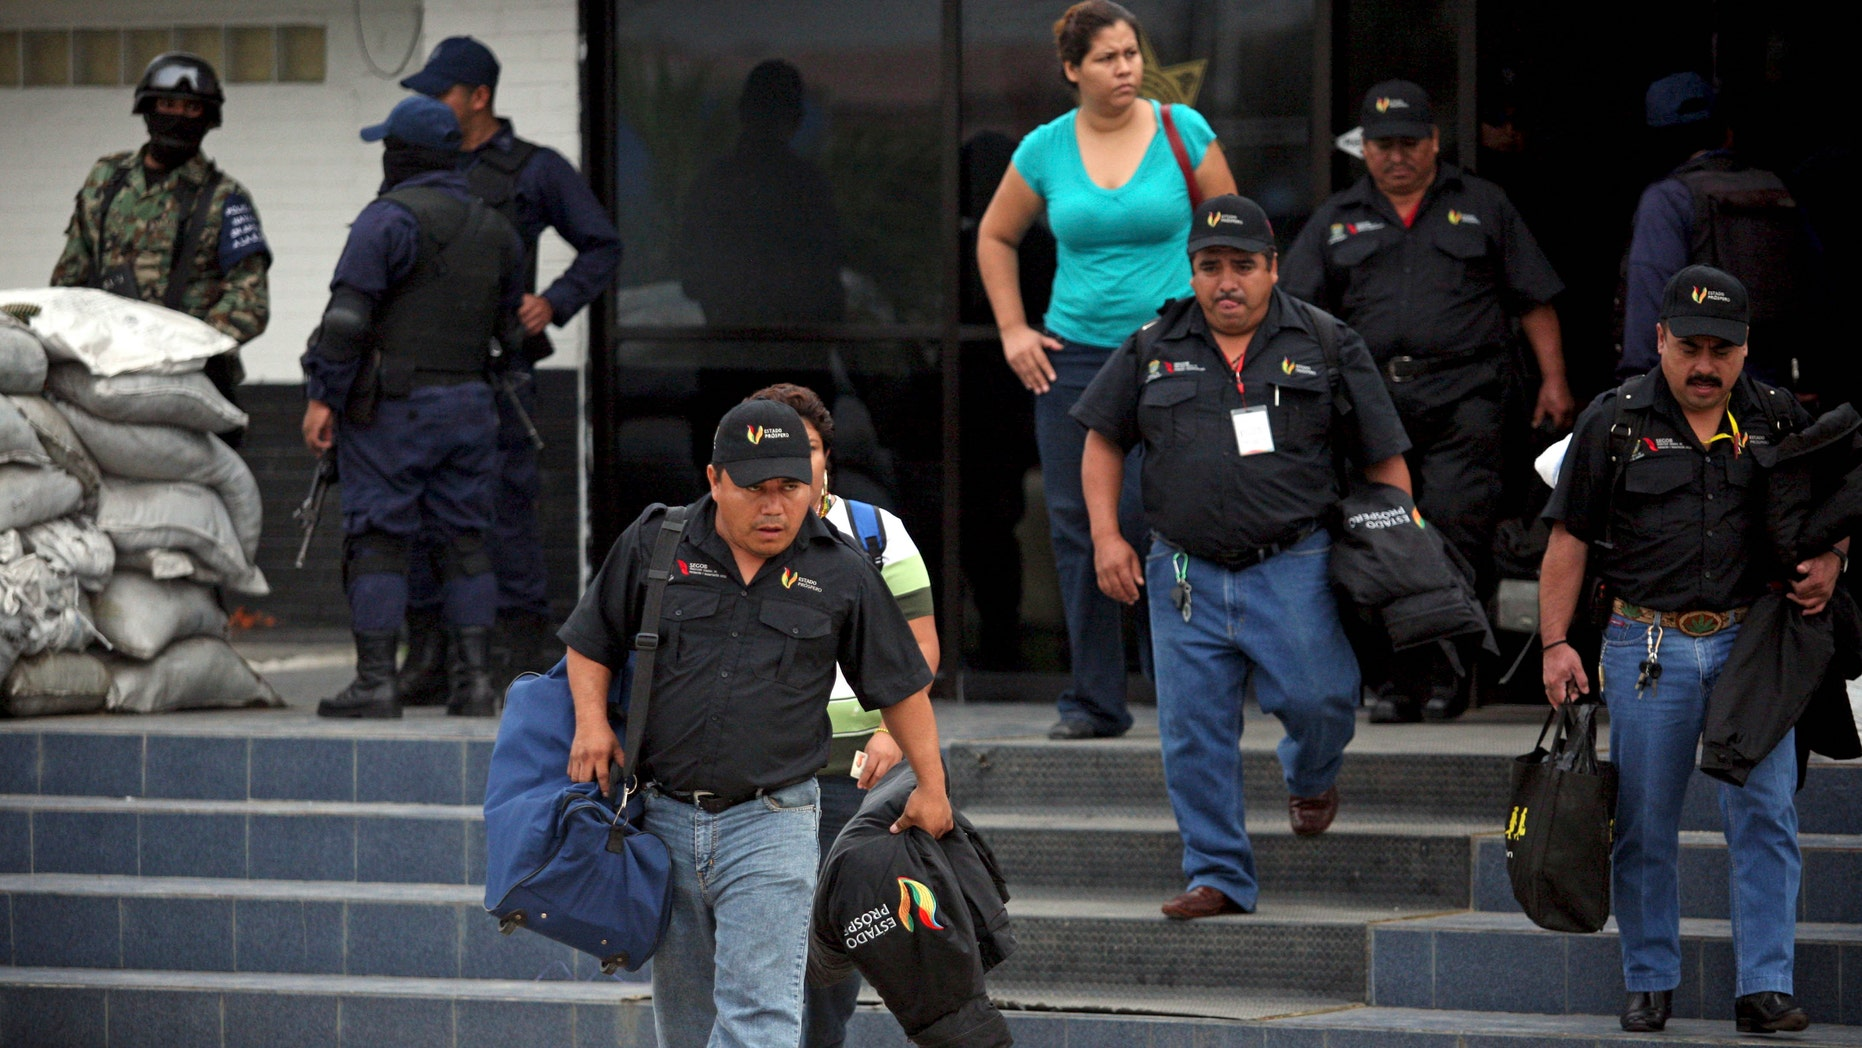 Municipal policemen leave a police station after the entire police force was disbanded in the Gulf port city of Veracruz, Mexico, Wednesday Dec. 21, 2011. The Veracruz state government said the decision is part of an effort to root out police corruption and start from zero in the state's largest city. The navy will be in charge of patrolling the city for the time being. (AP Photo/Felix Marquez)